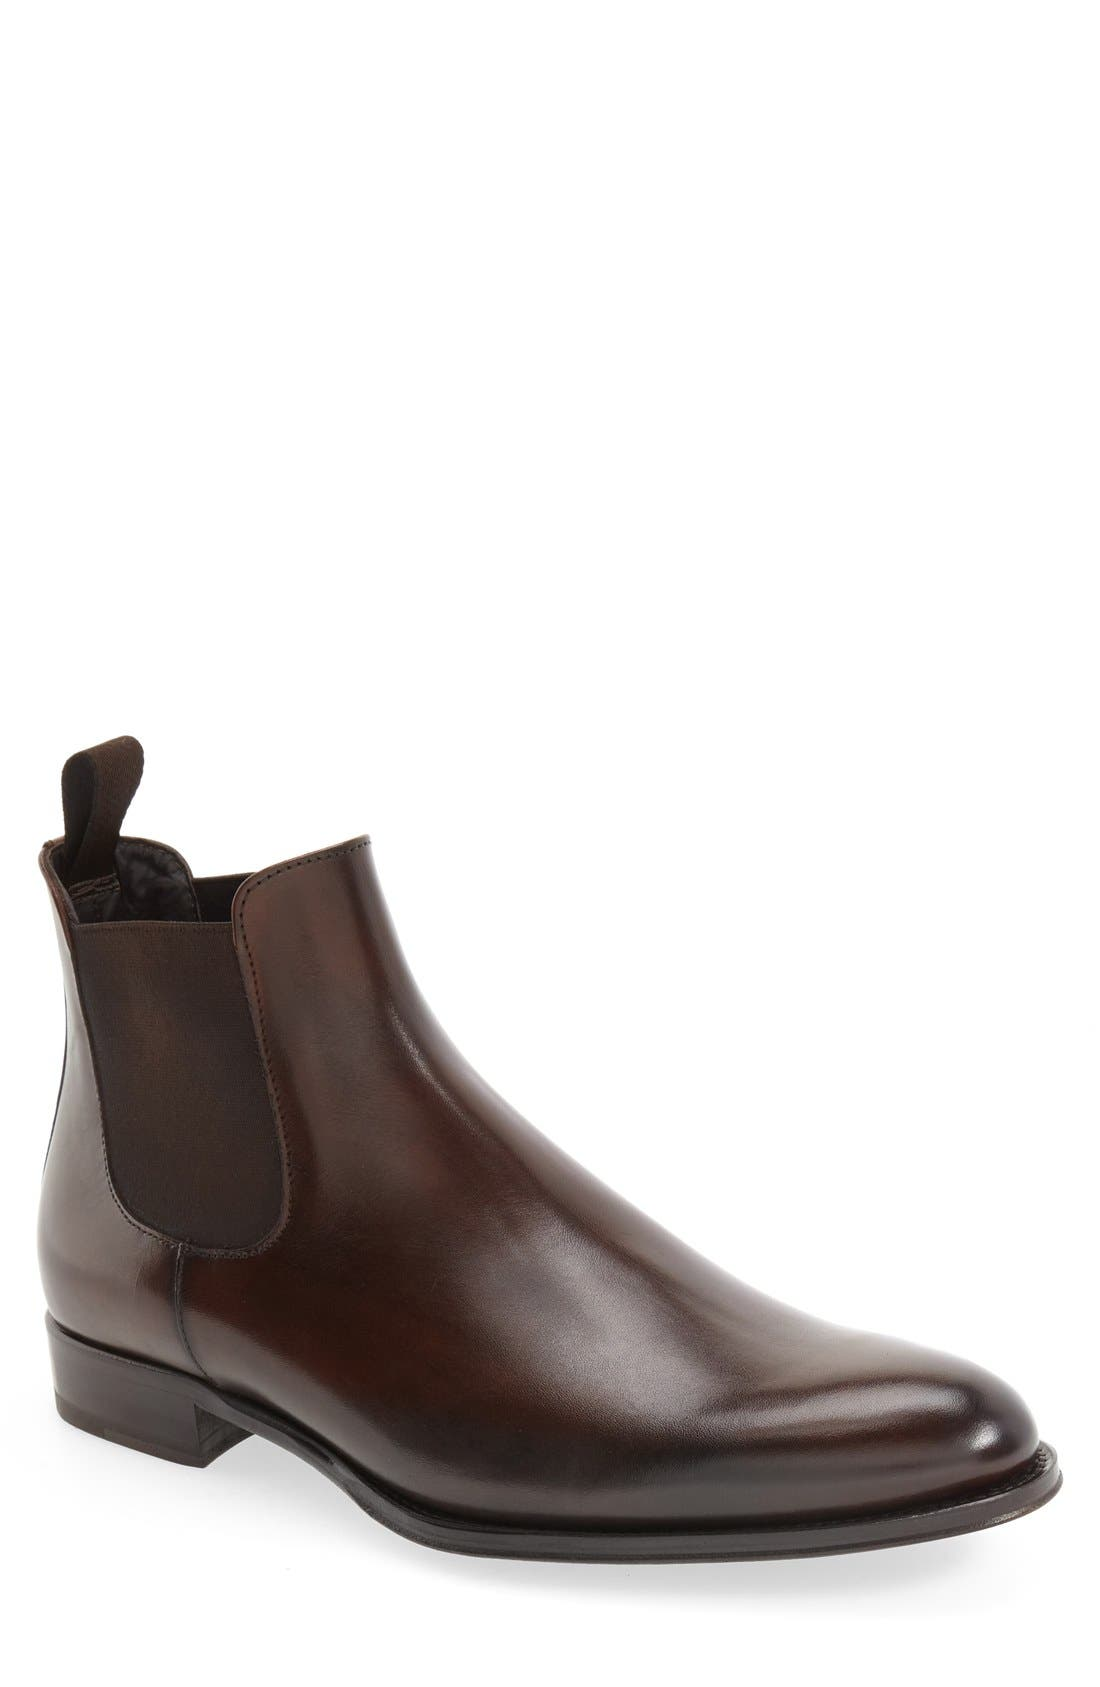 Toby Chelsea Boot,                         Main,                         color, PRAGA TMORO